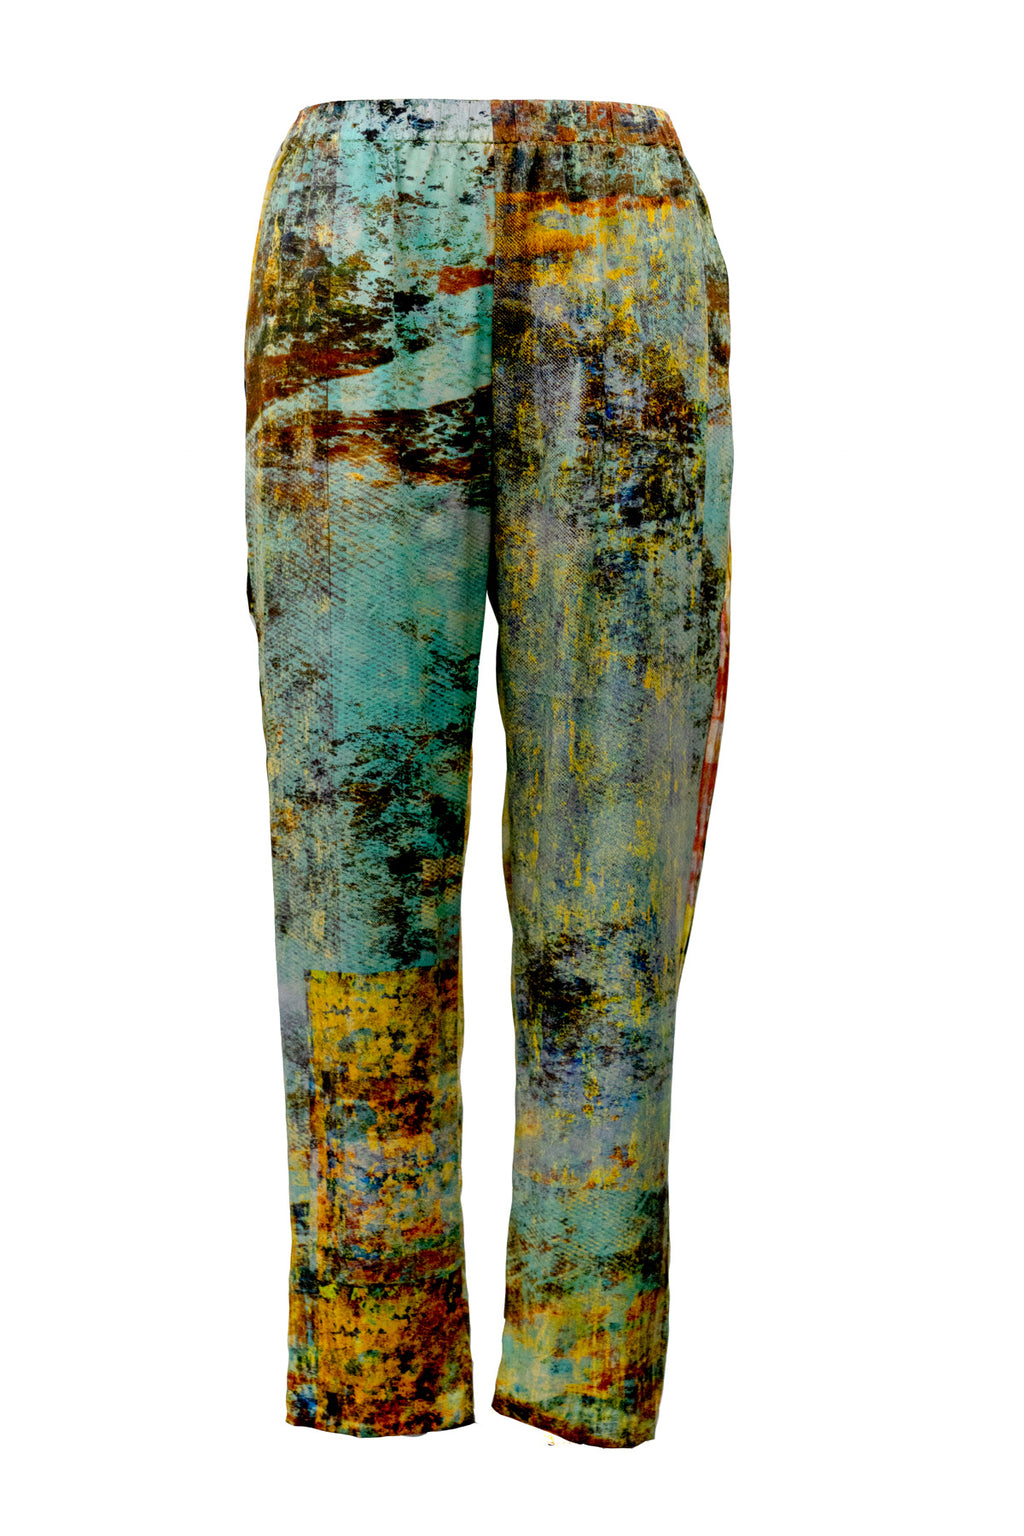 The Milos Silk Joy Pant